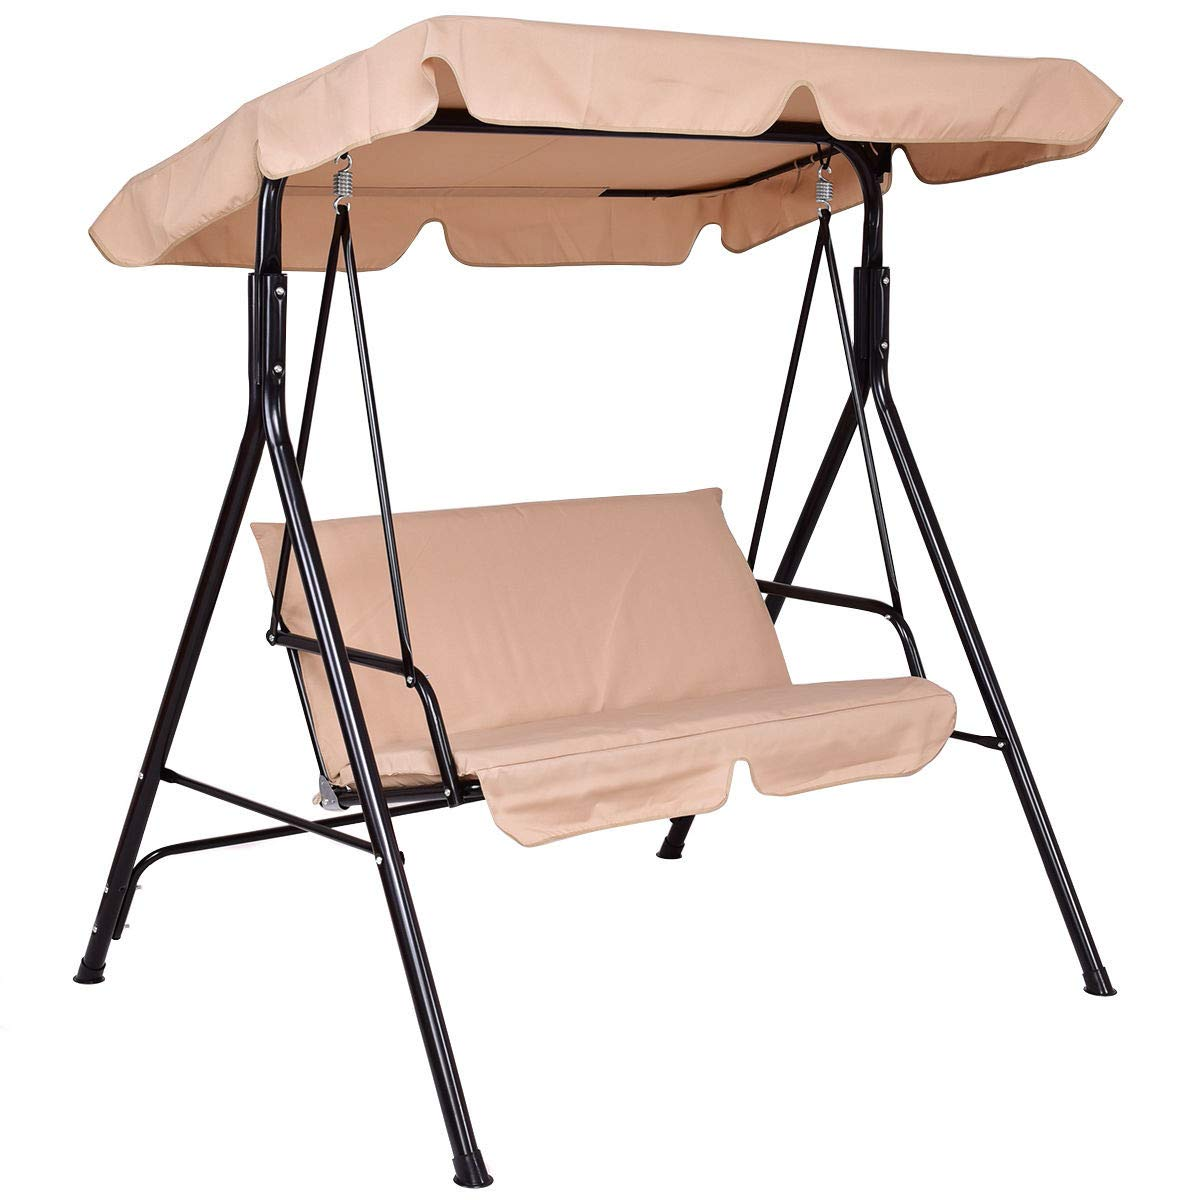 STS SUPPLIES LTD Garden Swing loveseat Beige Metal Shade Cushions Couch Swinging Yard Outdoor Furniture & E Book by Easy 2 Find.